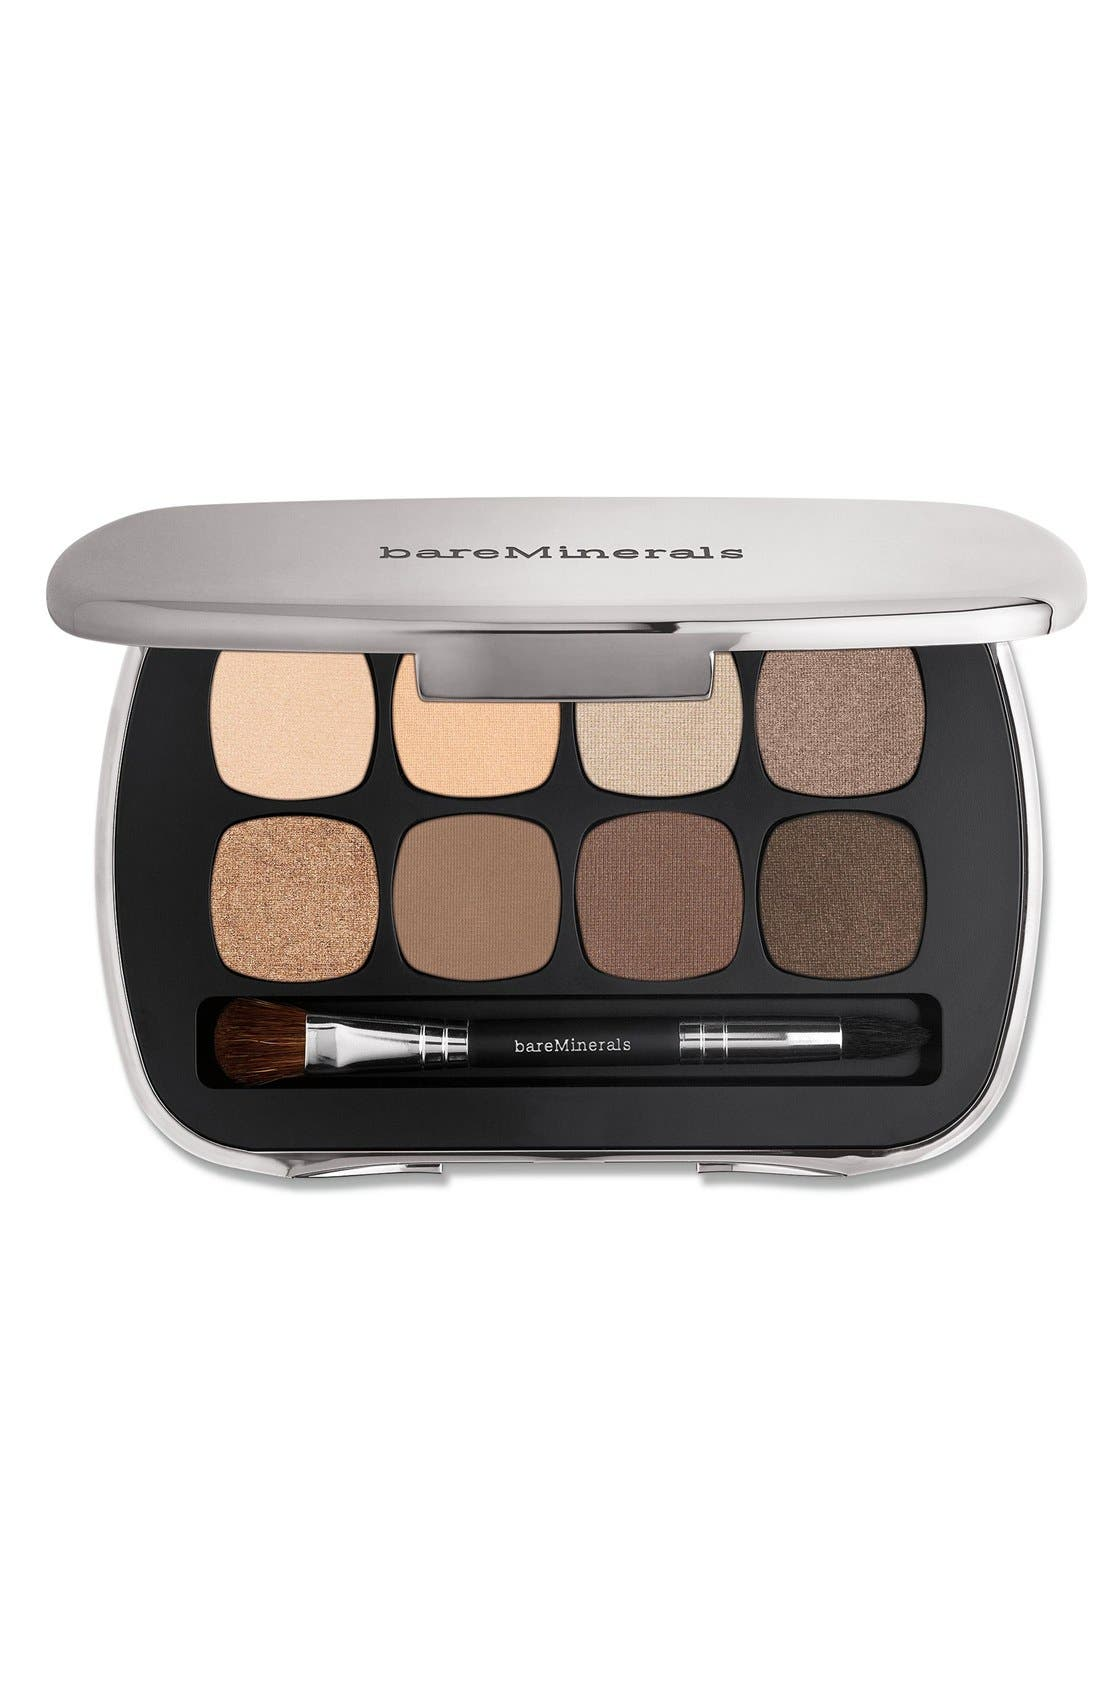 bareMinerals® READY 8.0 The Bare Neutrals Eyeshadow Palette